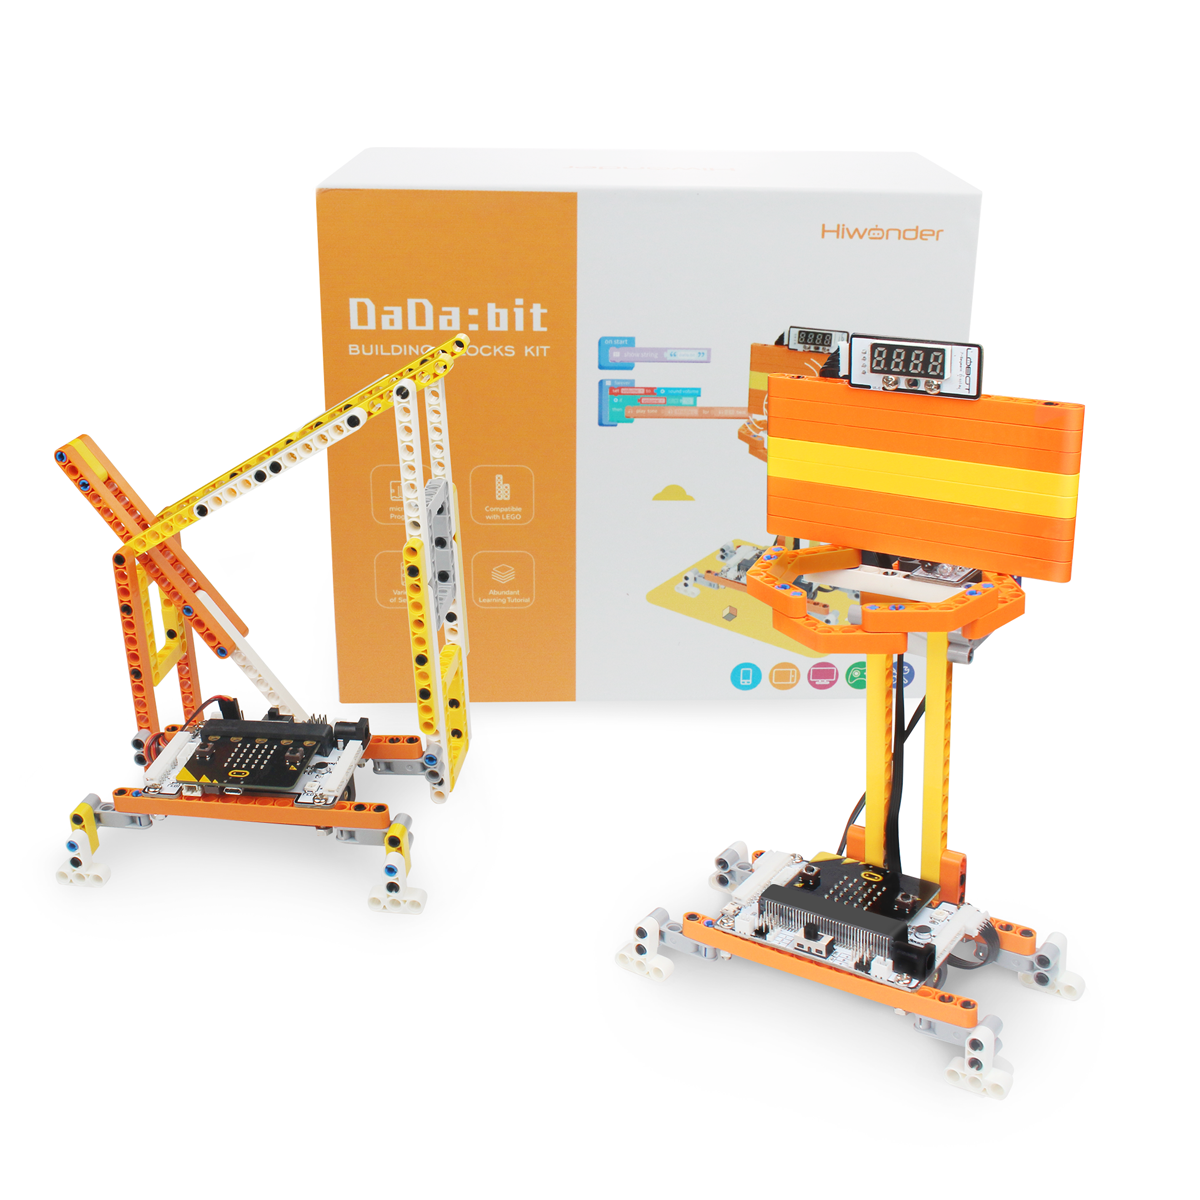 DaDa:bit  DIY Building Blocks Kit with 200+ Structural Parts for Building Inventions